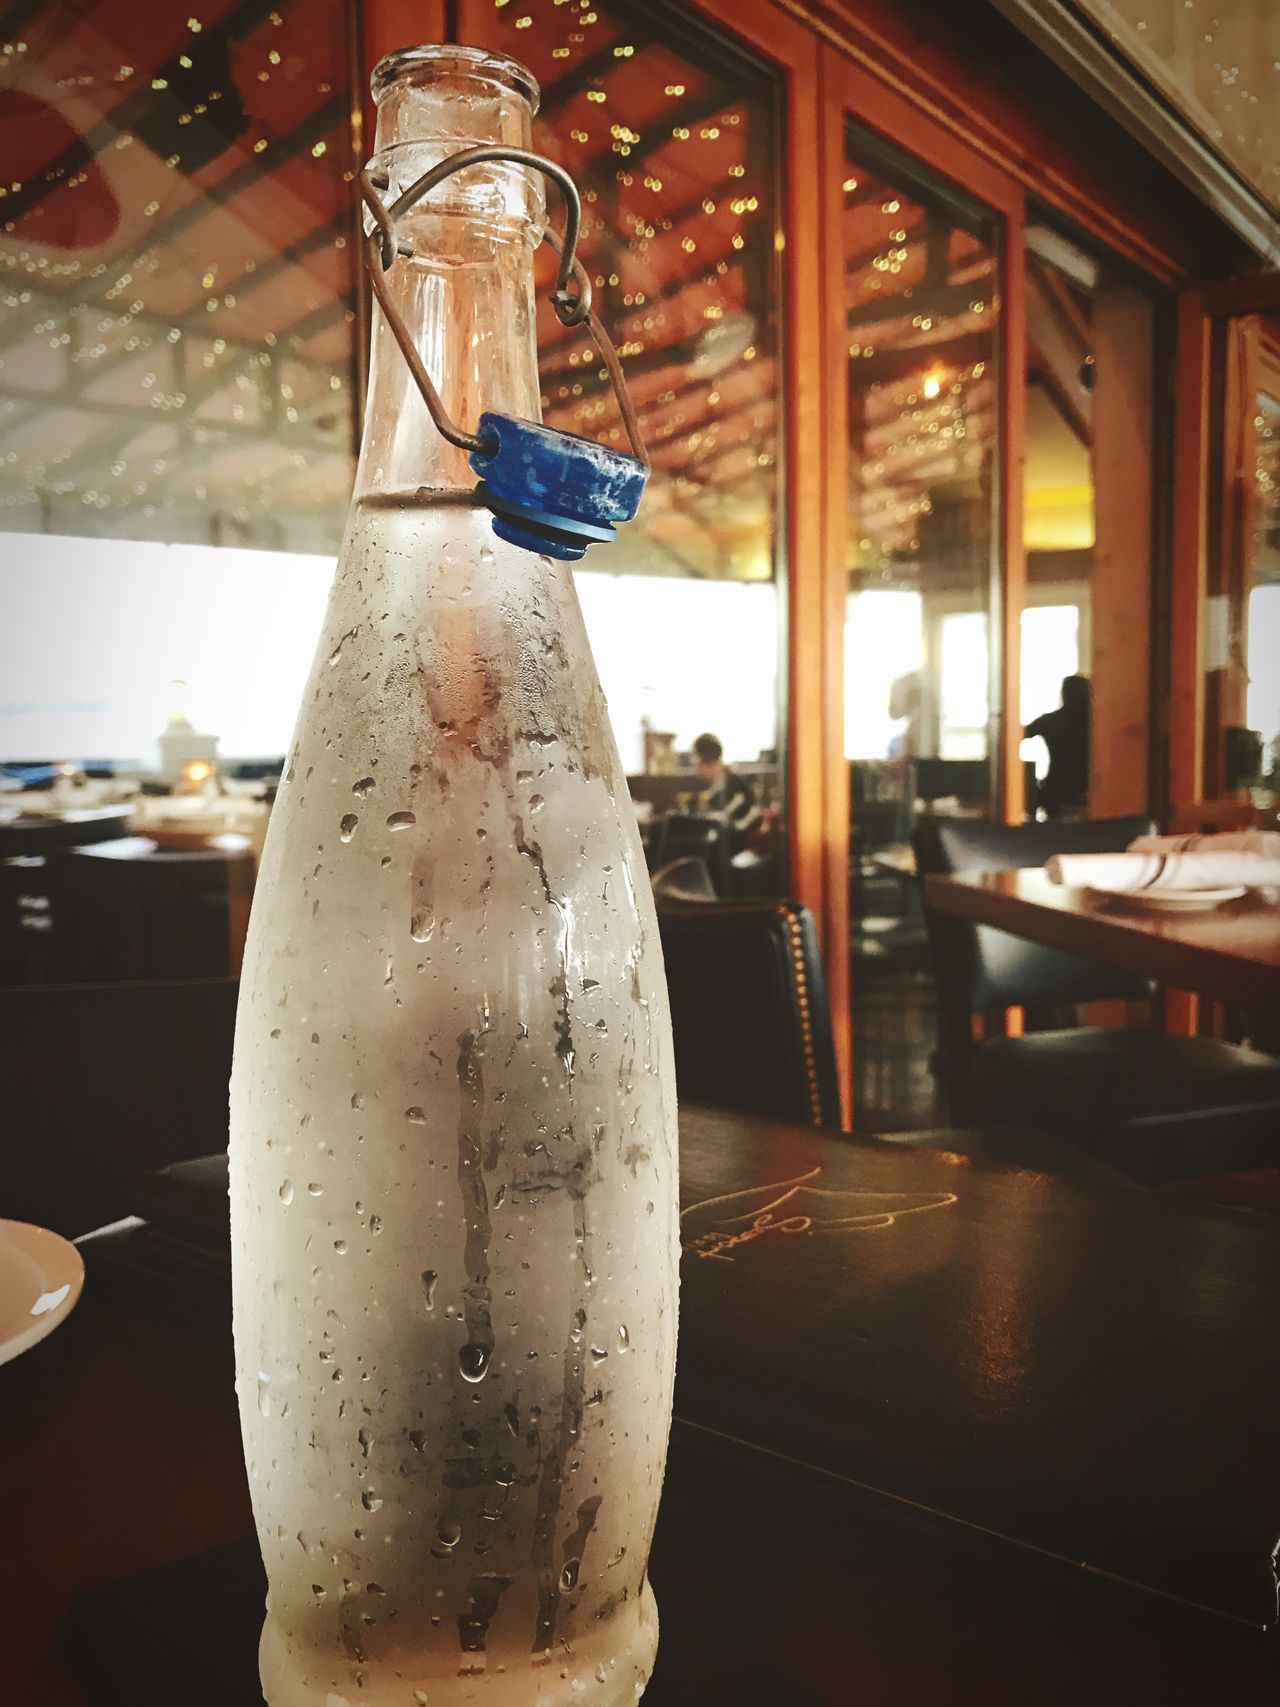 Bottle Focus On Foreground Indoors  Drink Refreshment No People Close-up Food And Drink Industry Restaurant